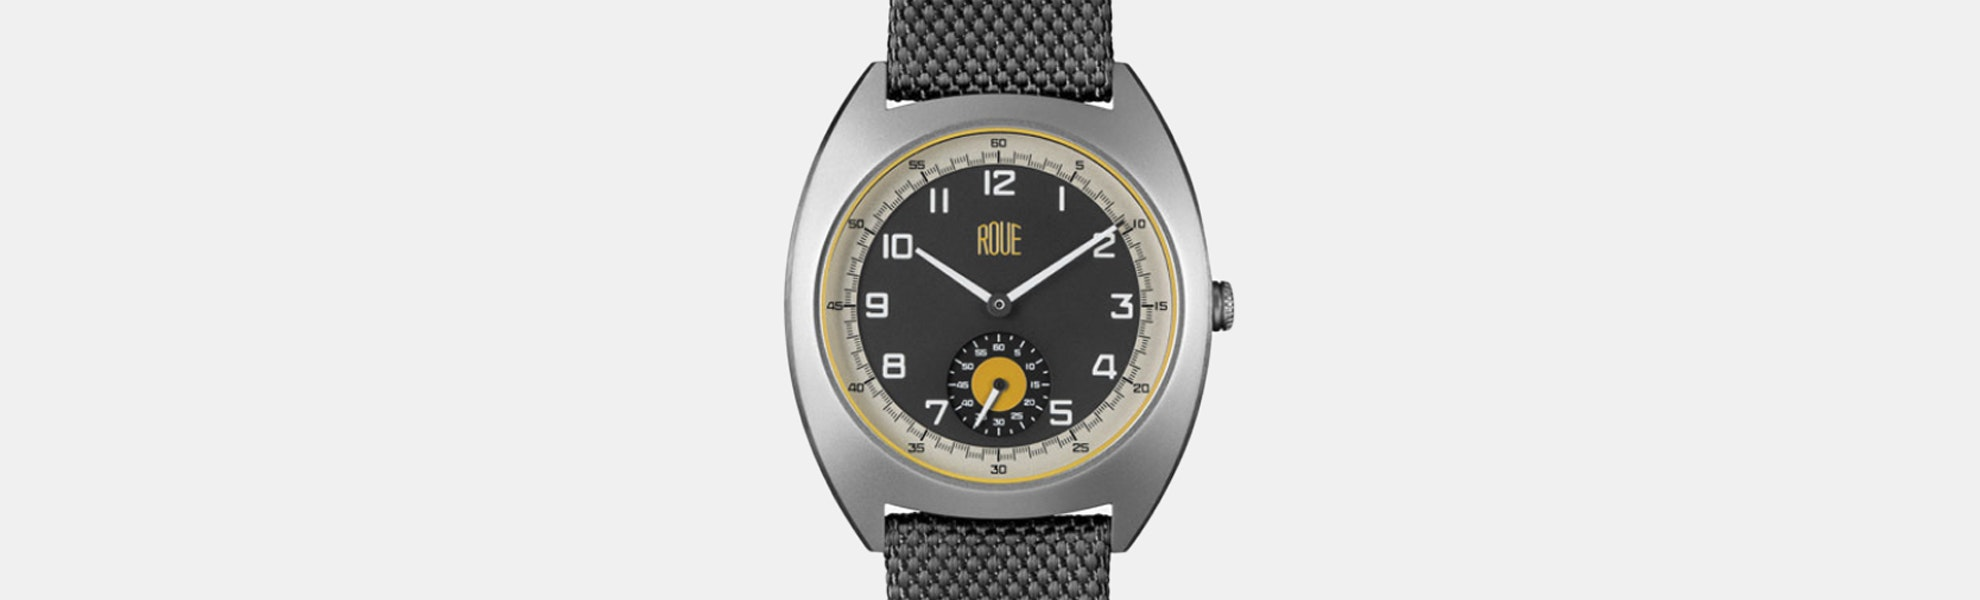 Roue Watches SSD